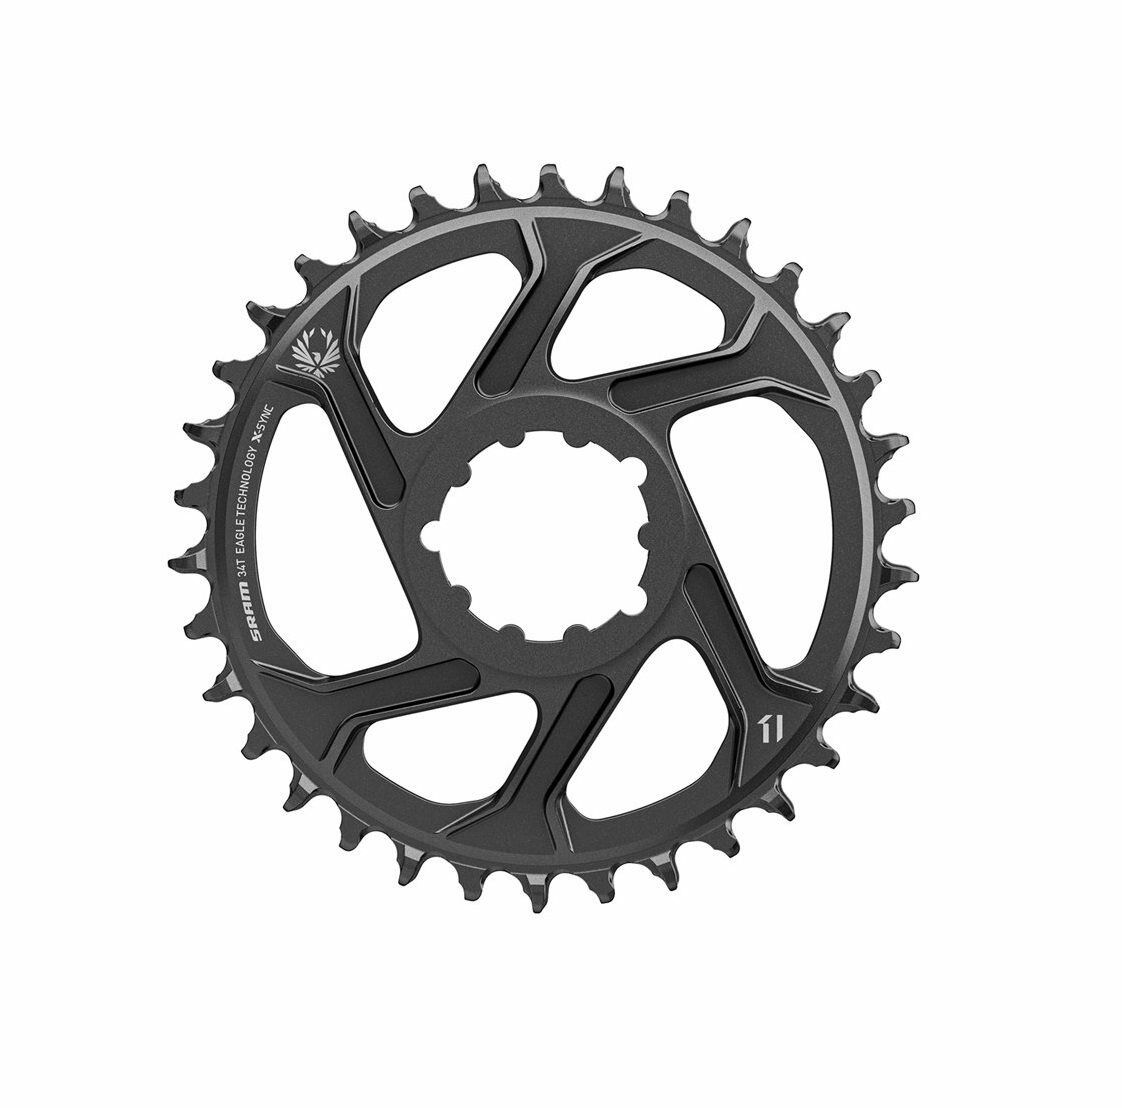 Chainring X-Sync 2 Direct Mount 34T for X01   XX1 Eagle 12sp SRAM Mountain bike